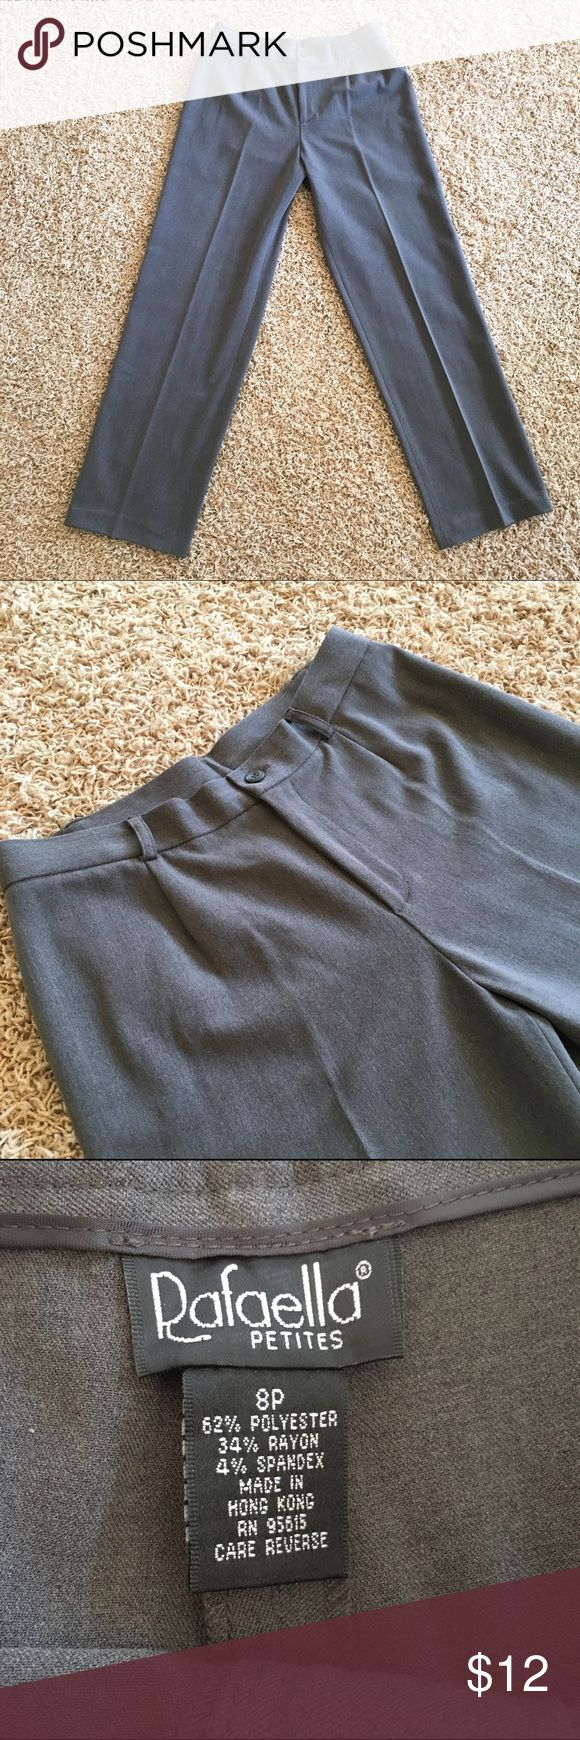 Gray Dress Pants by Rafaella. 8P. Rafaella Gray Pants. Zip front. Nice condition. Bundle with other Rafaella pants! 15 inch at waist, 11 inch inseam, 9 inch opening at ankle 39.5 inches from top of waist to bottom of ankle. Rafaella Pants